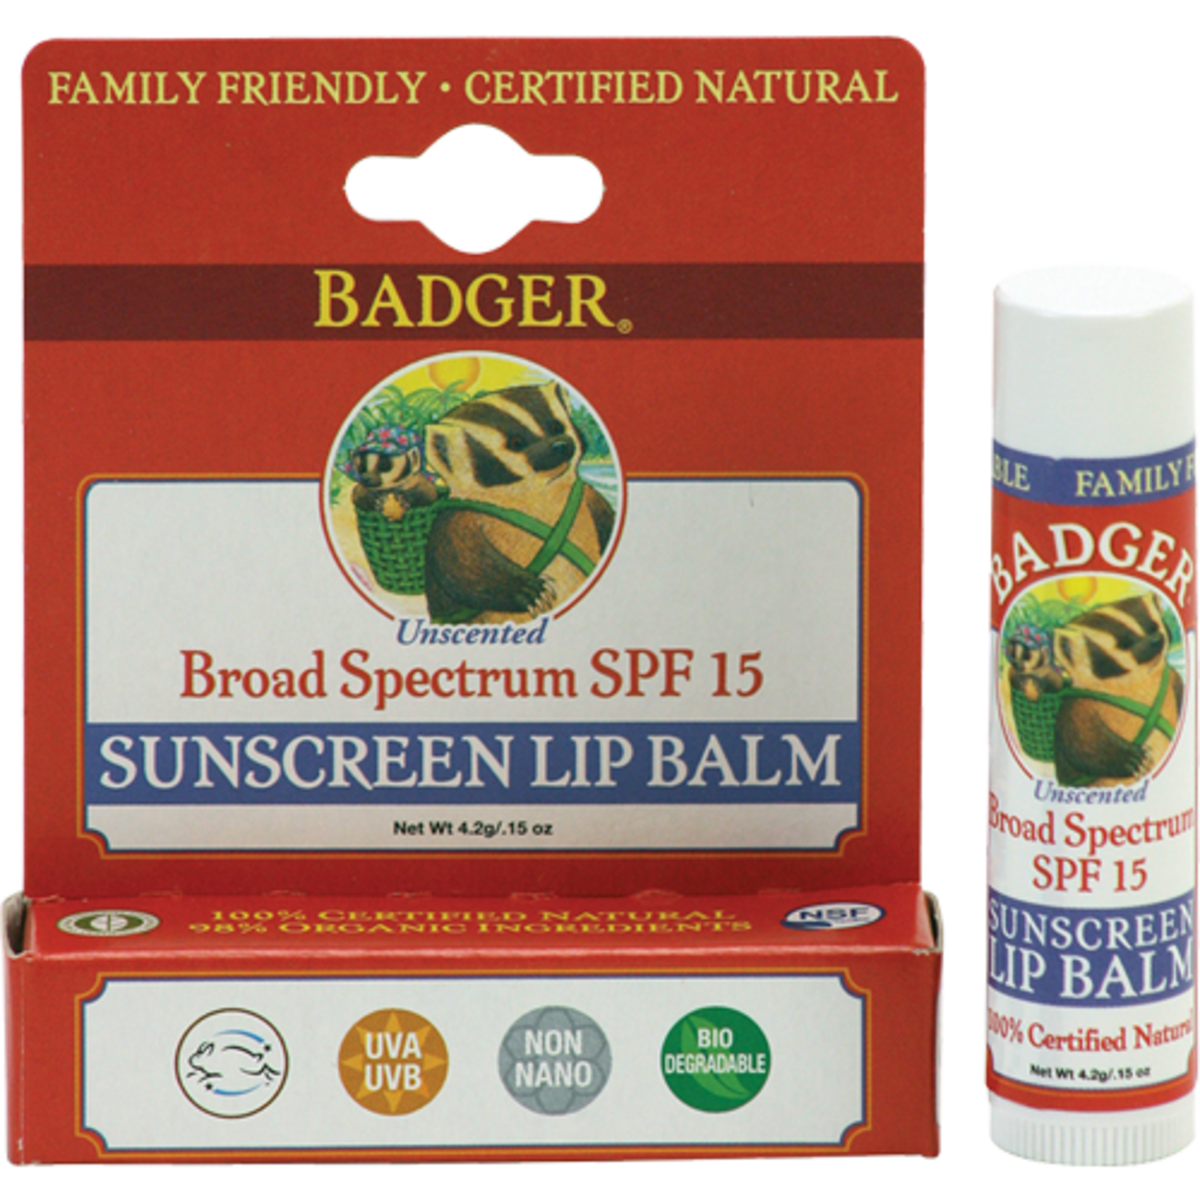 Badger Sunscreen Lip Balm